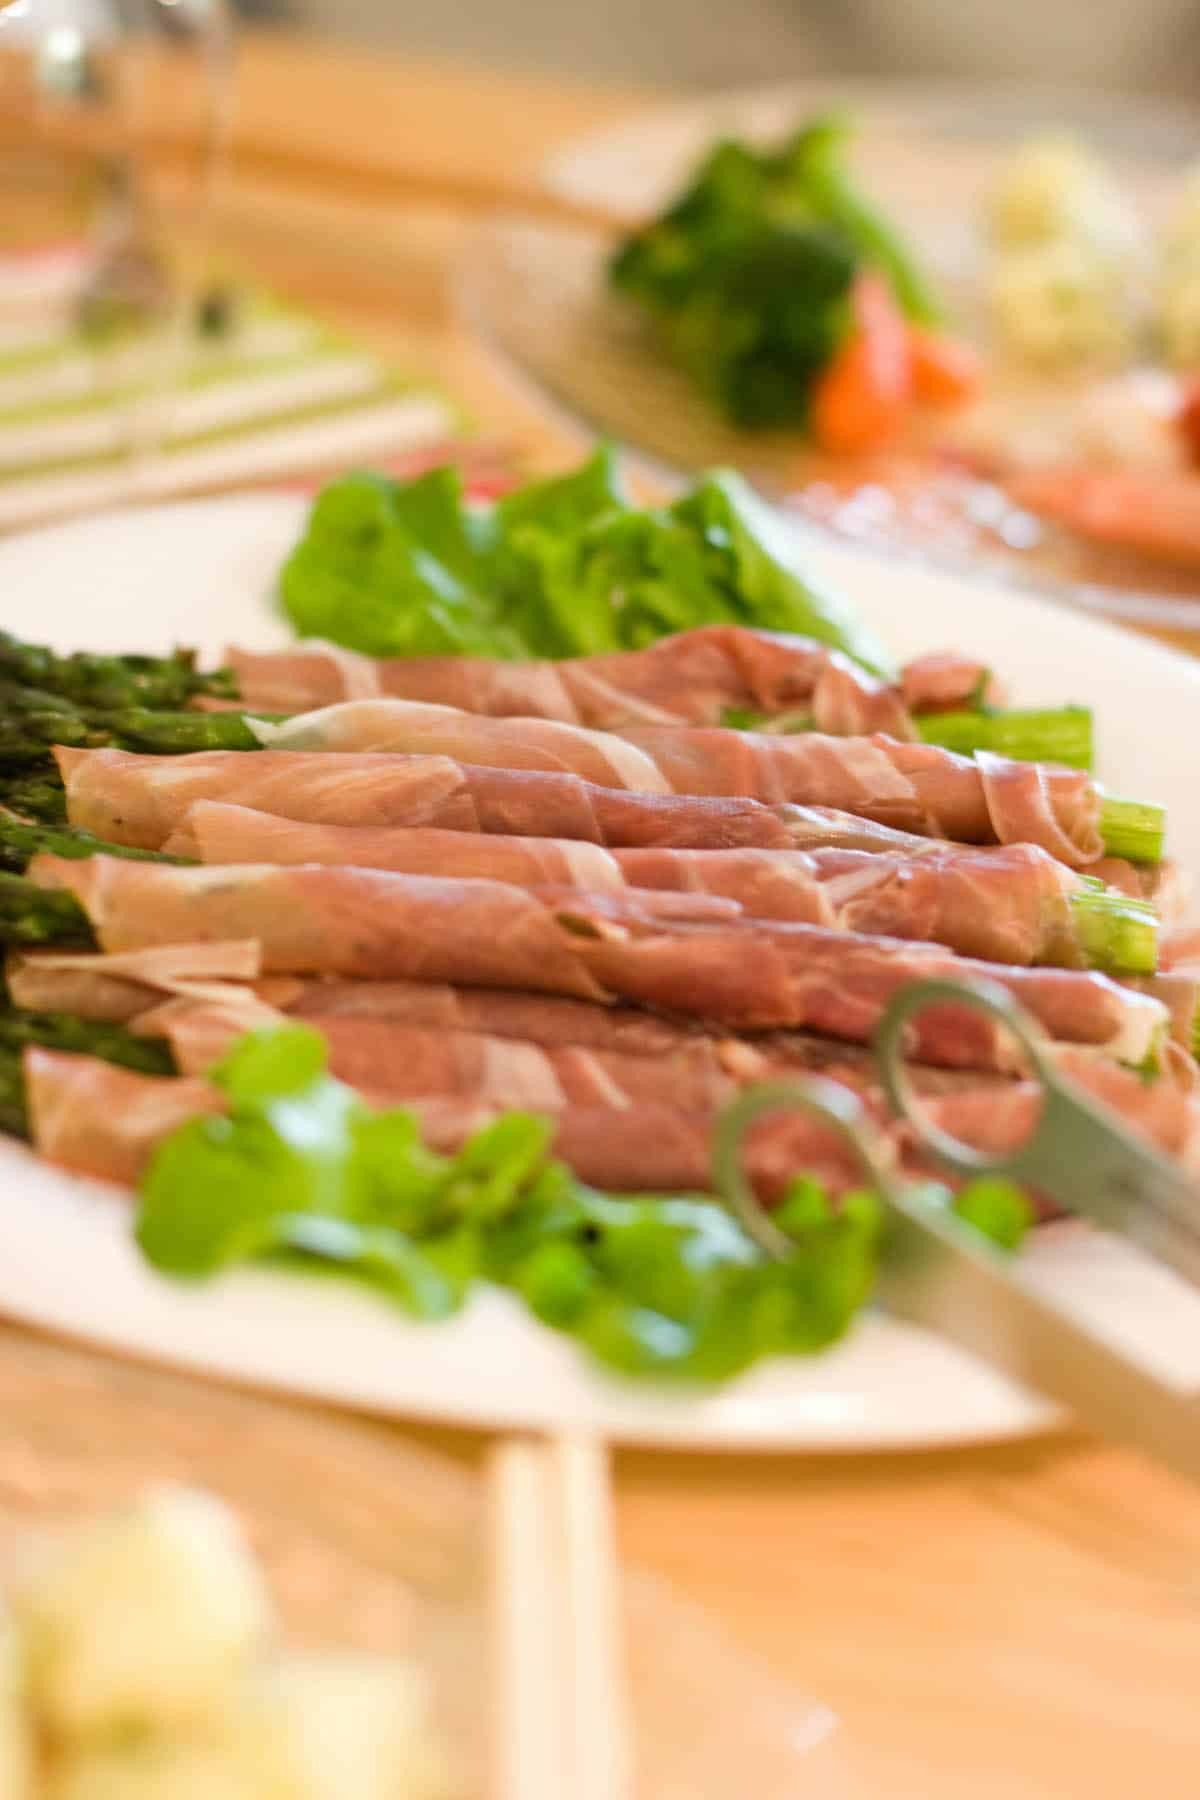 Green asparagus spears wrapped in slices of cured ham on a white plate